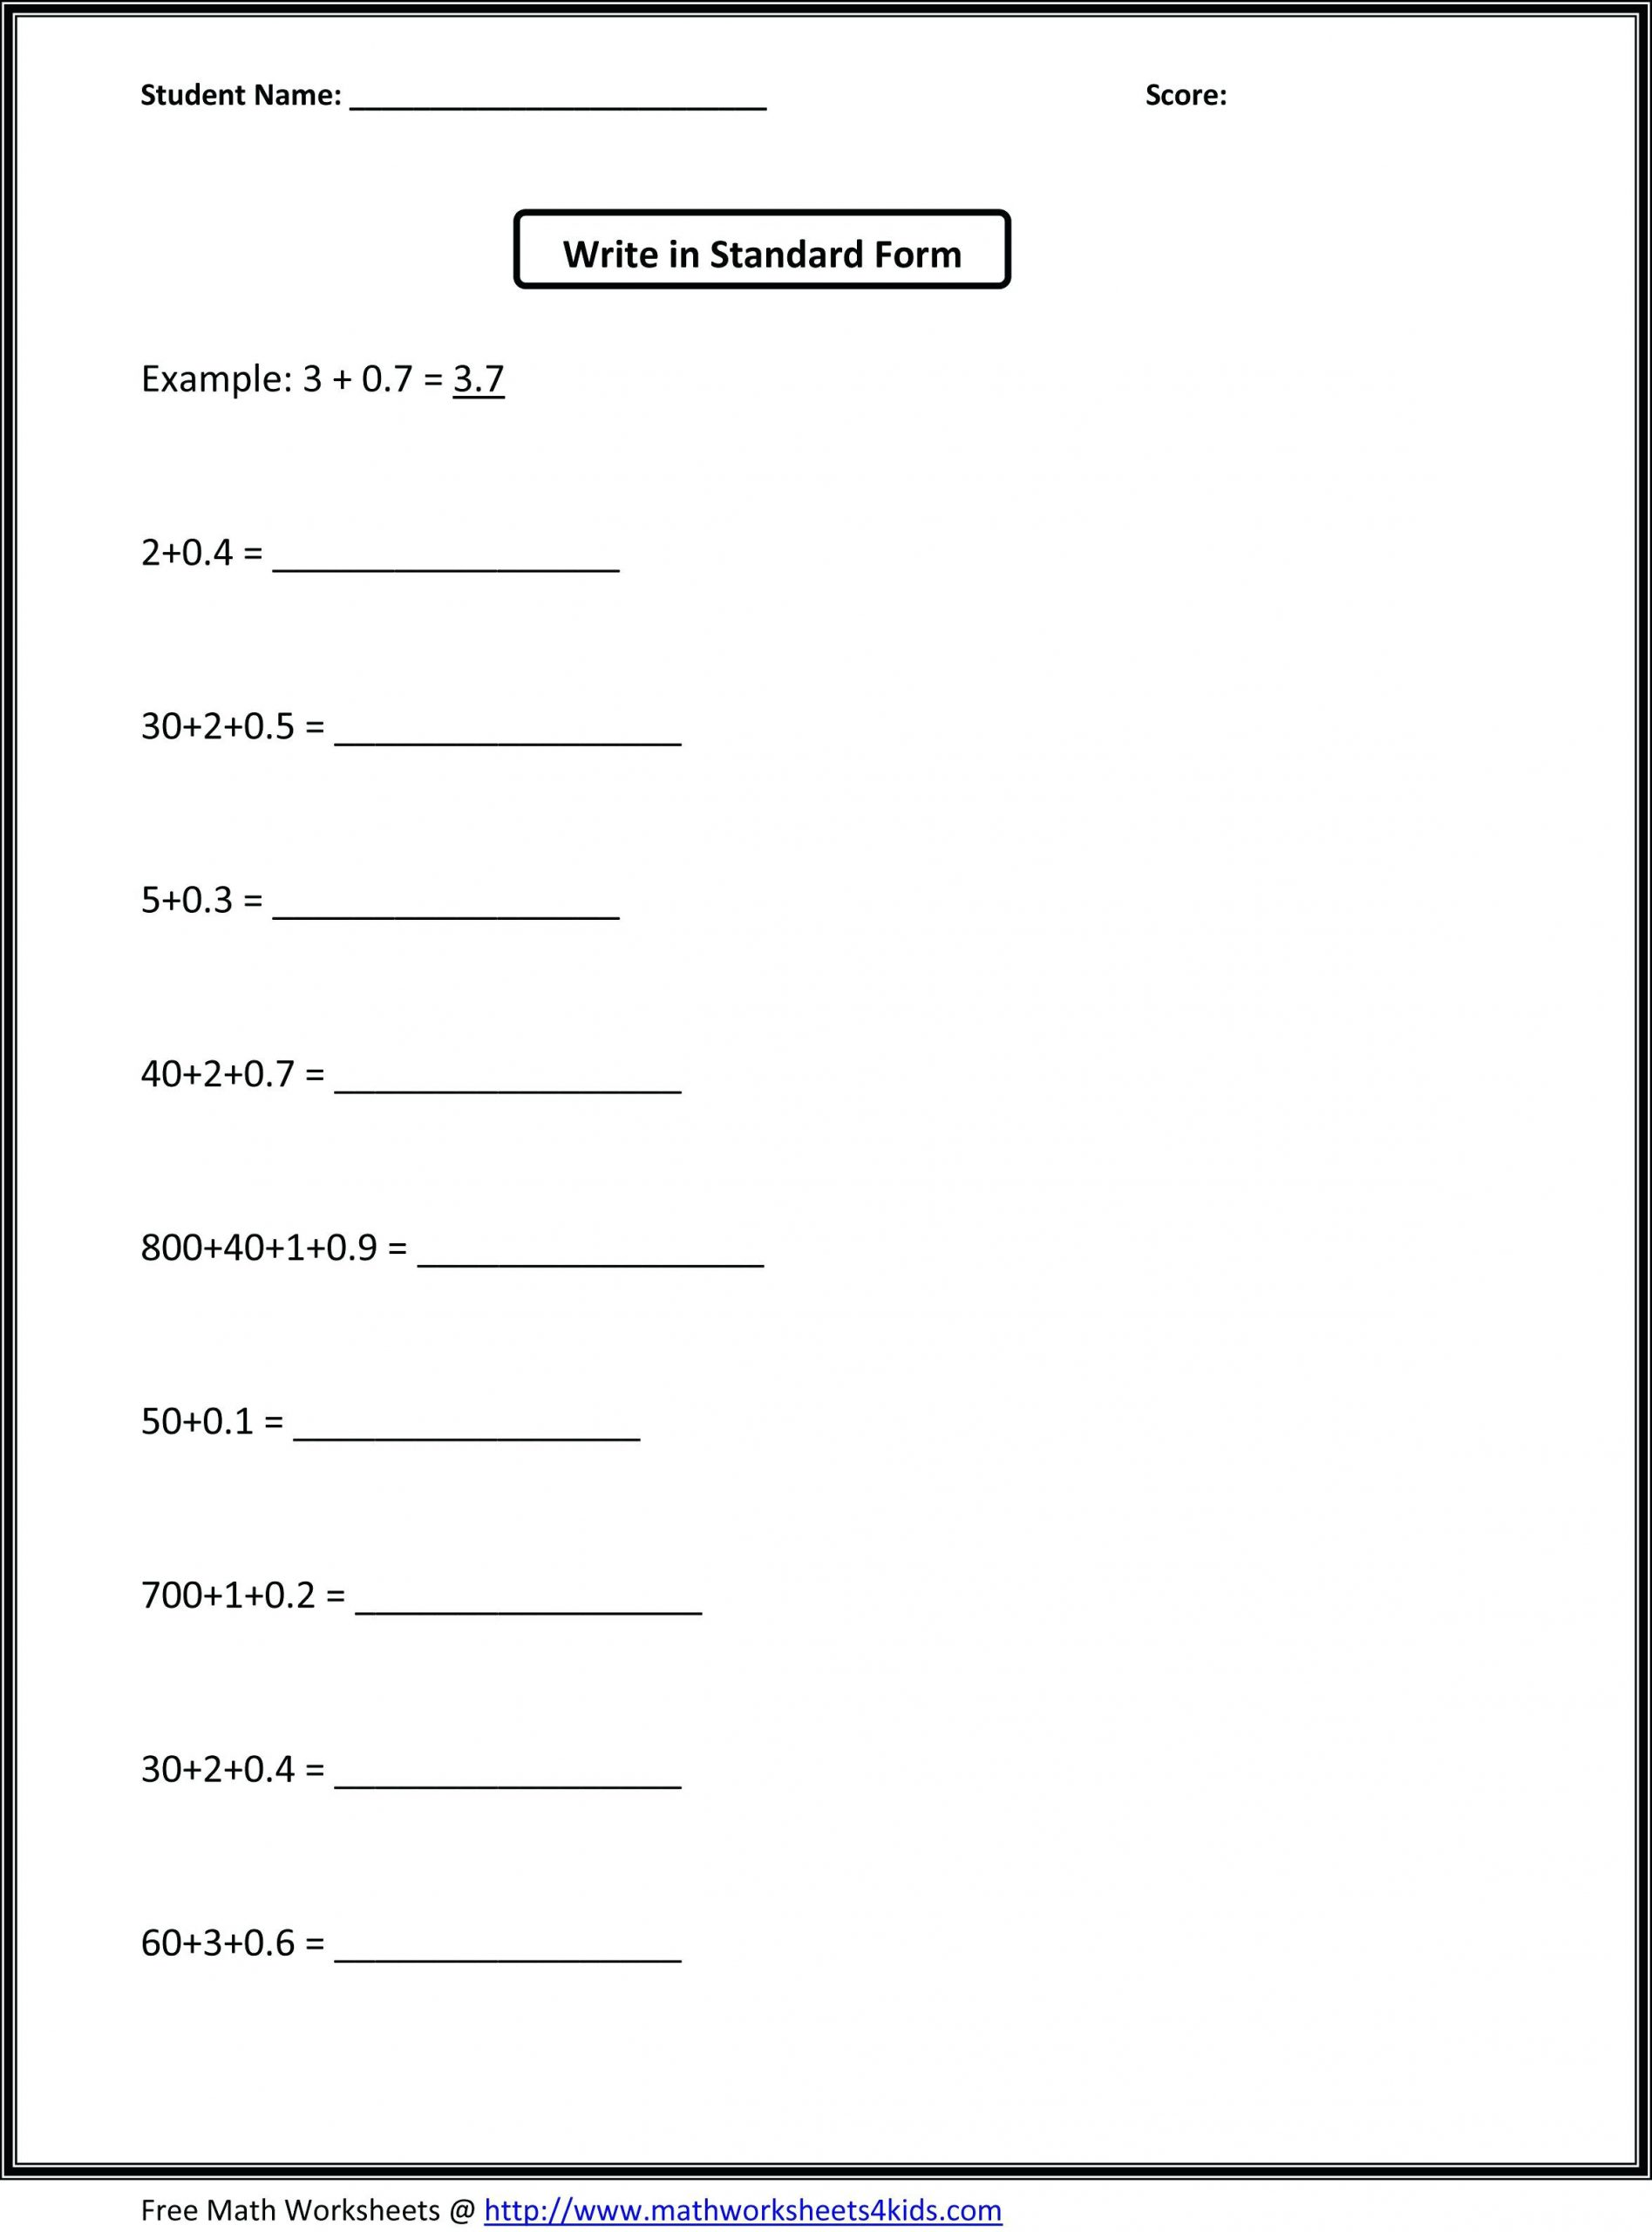 Expanded form Worksheets 5th Grade 5th Grade Place Value Worksheets Awesome Collection Fifth